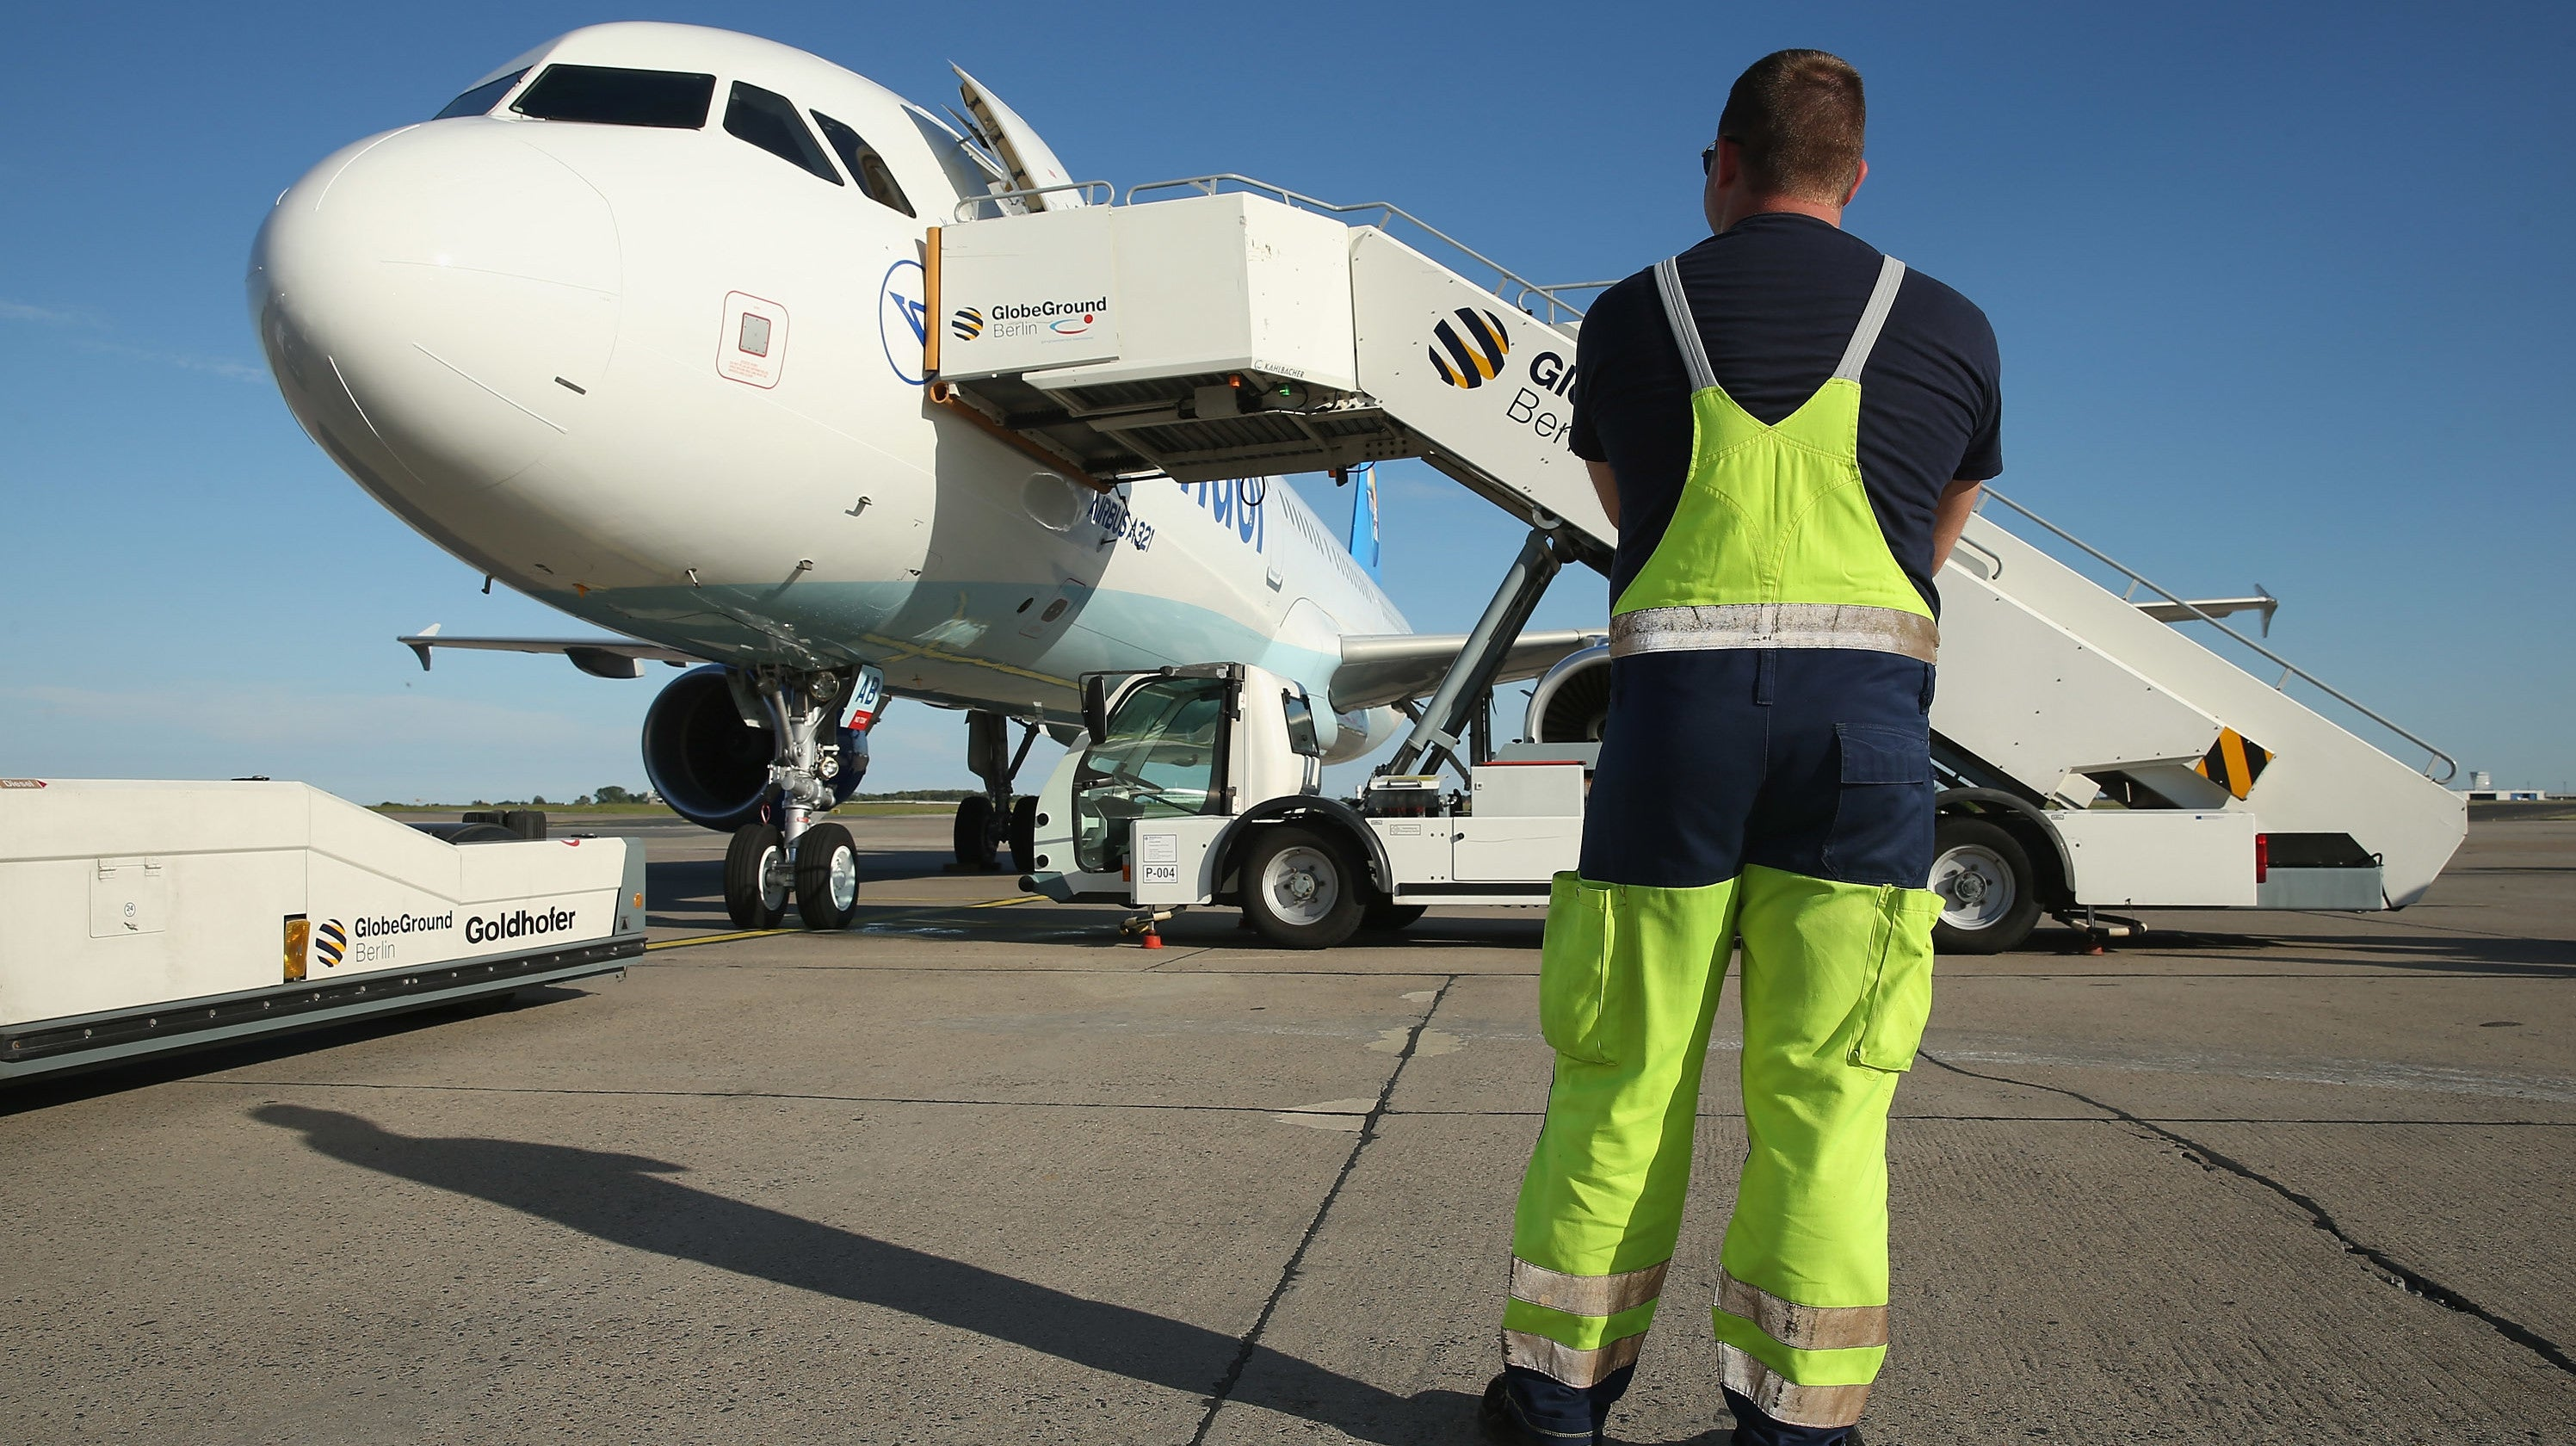 Flight Turned Back After Pilot Spilled Coffee Causing Control Panel To Melt And Smoke